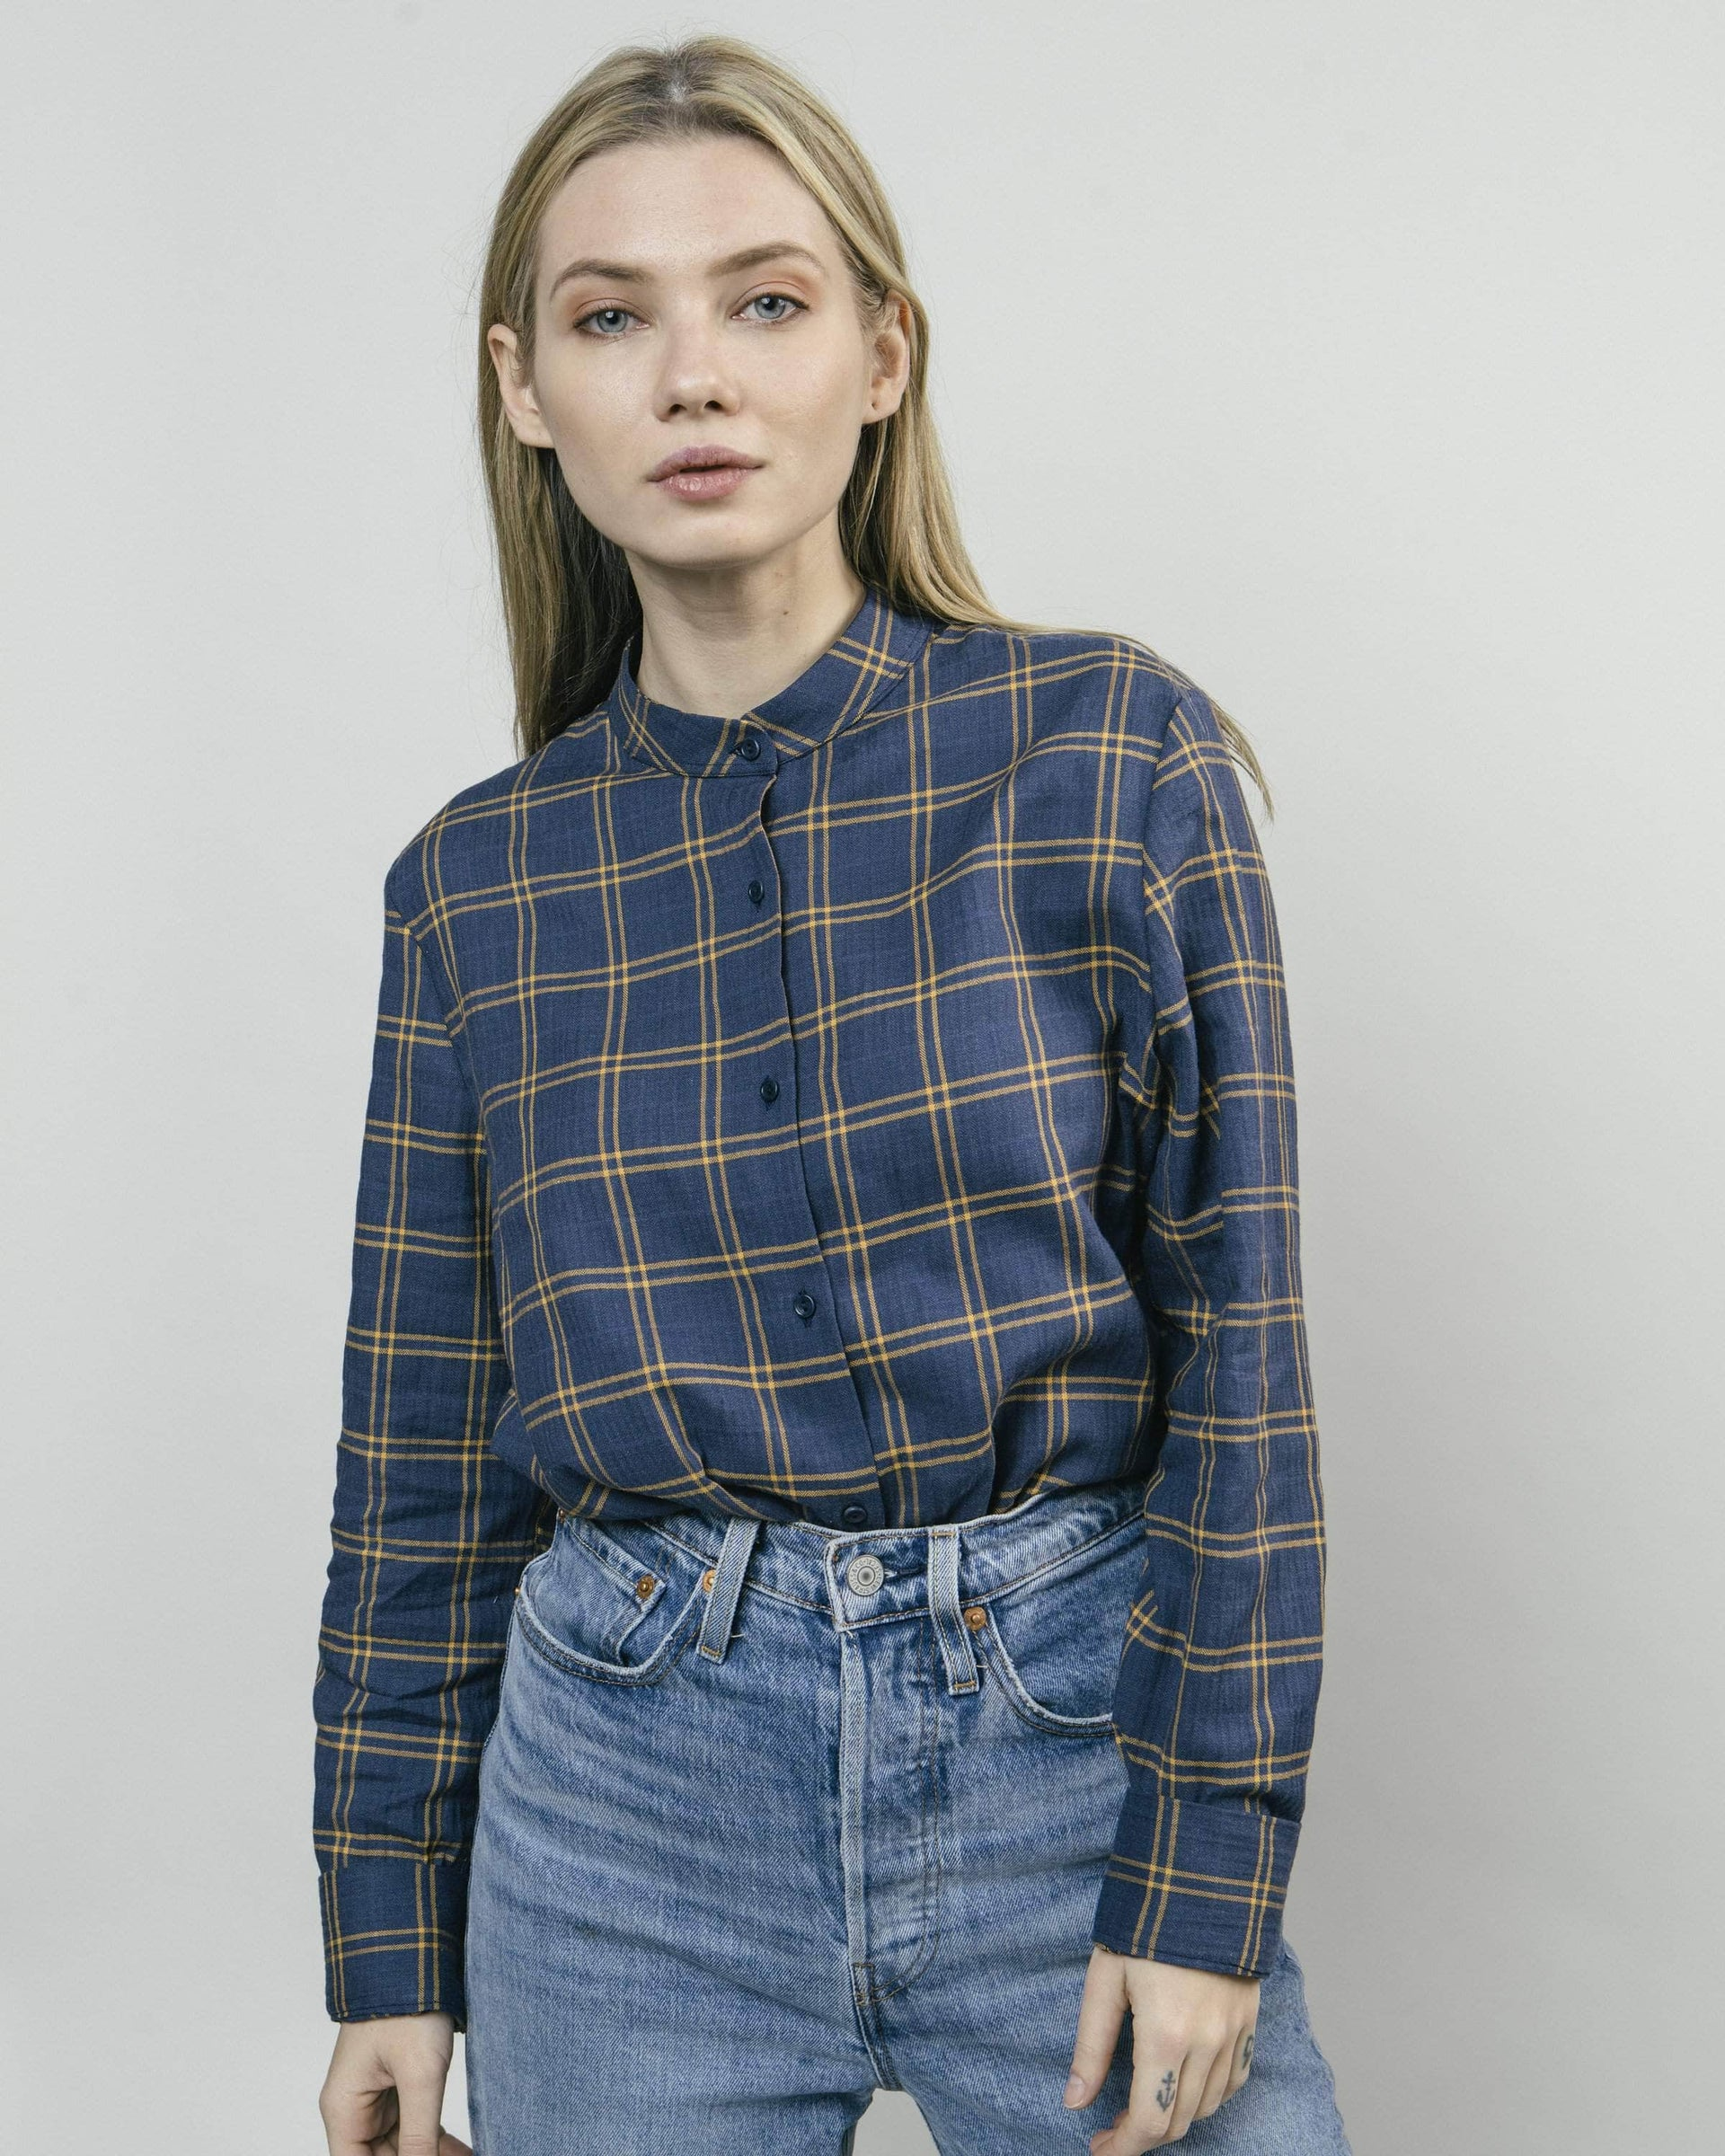 Woodcutter Essential Blouse from Klow